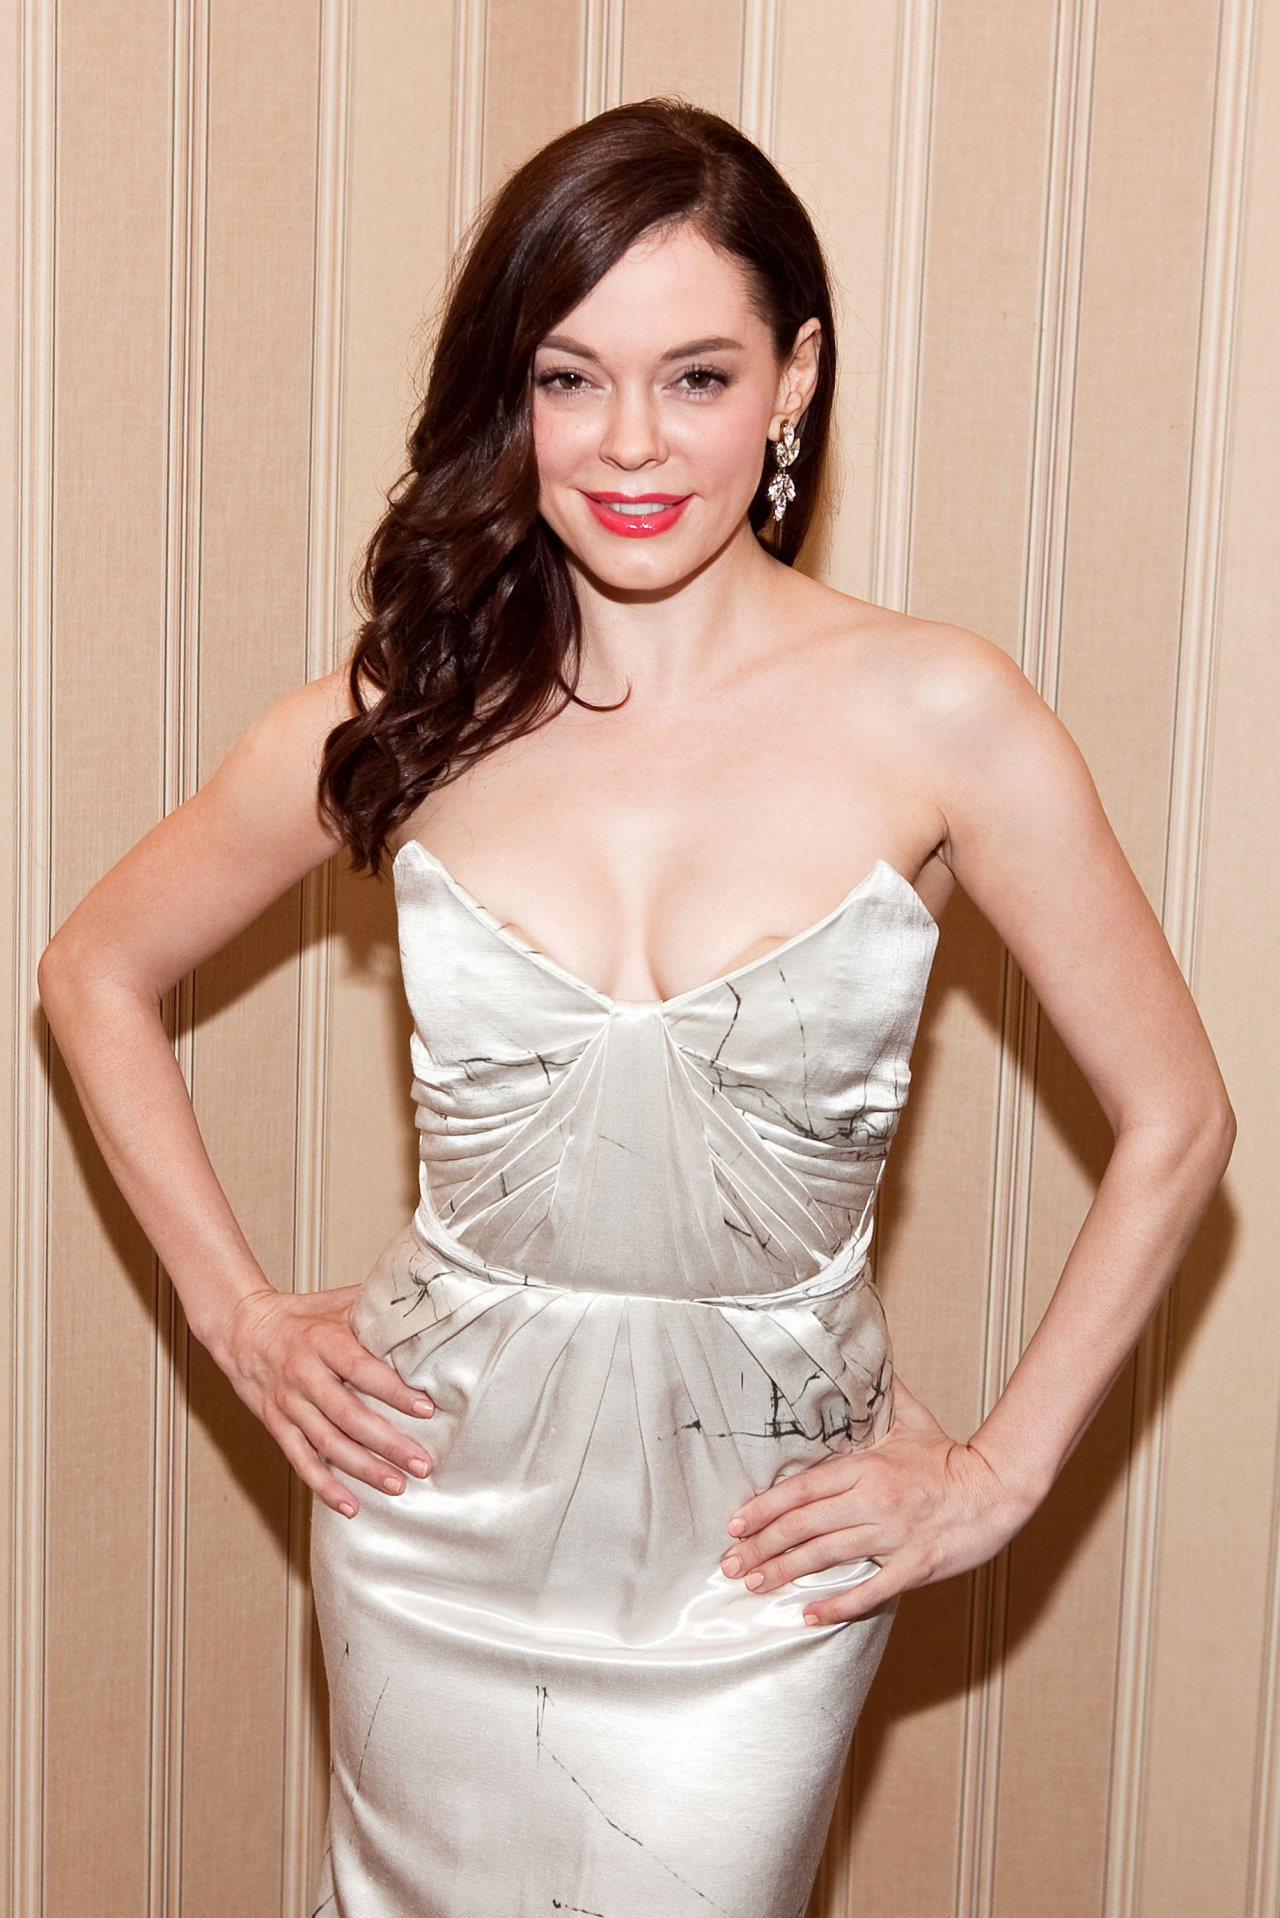 rose mcgowan pictures - photo #46